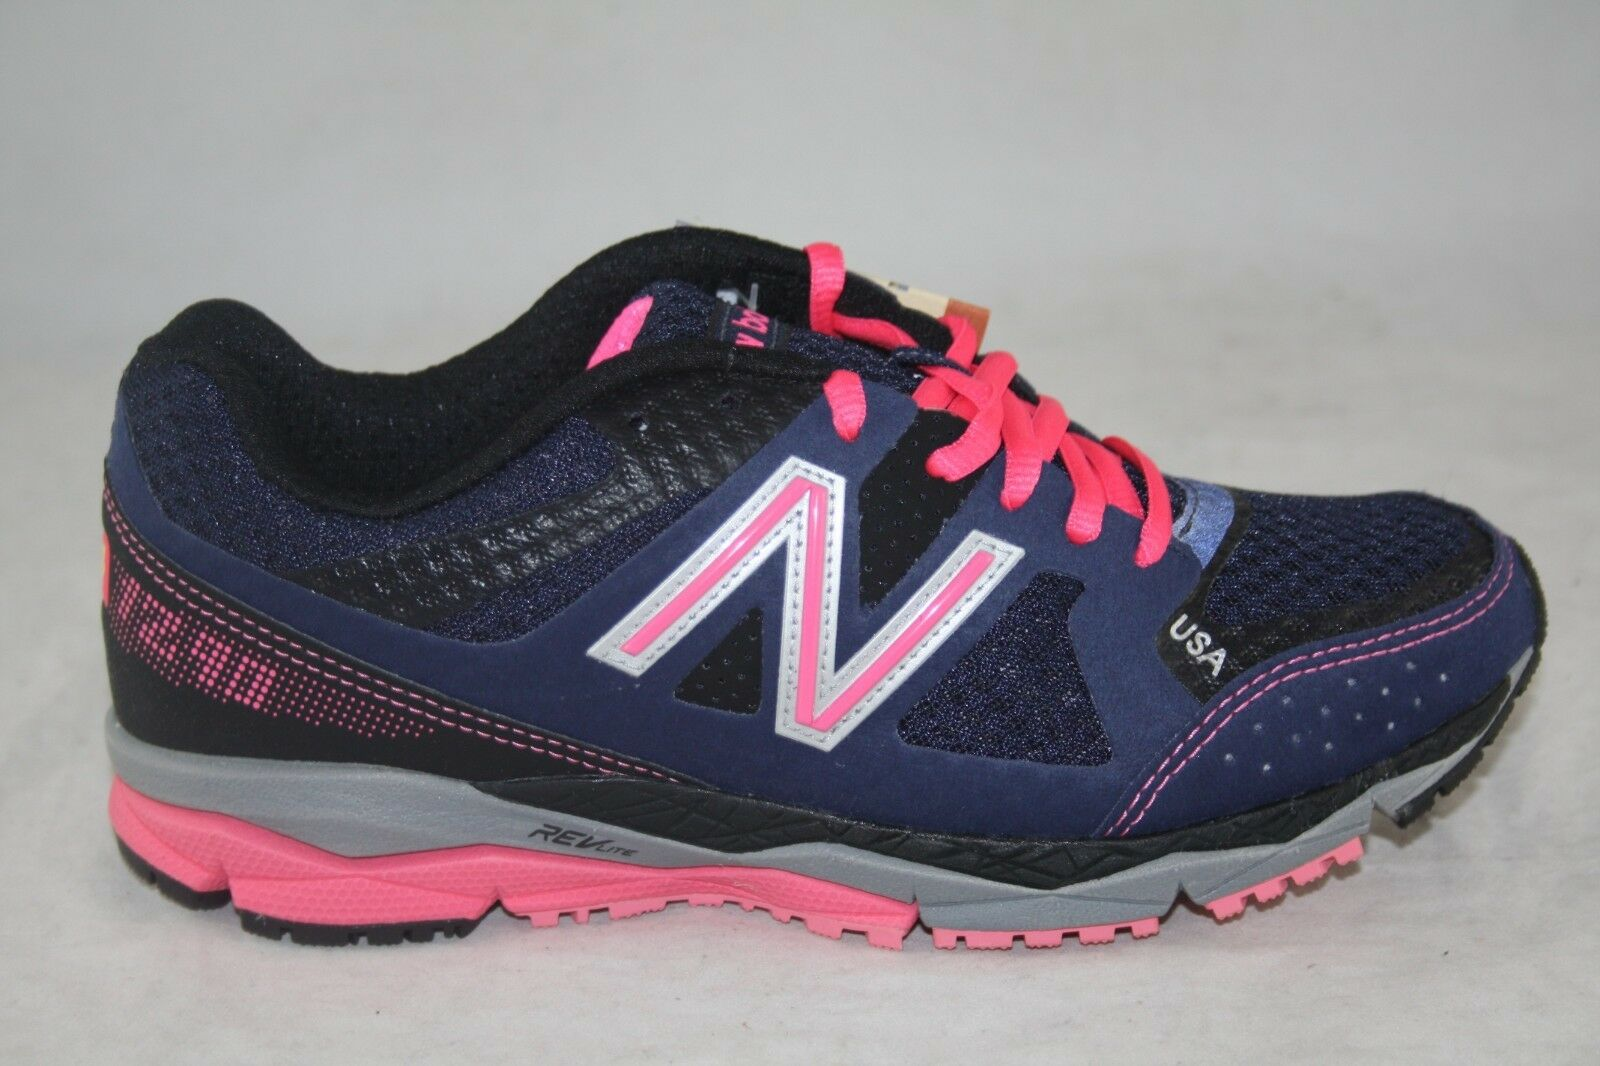 NEW BALANCE WOMEN'S  RUNNING Schuhe W1290PP USA NAVY/HOT PINK REV LITE MADE IN USA W1290PP cebbf6